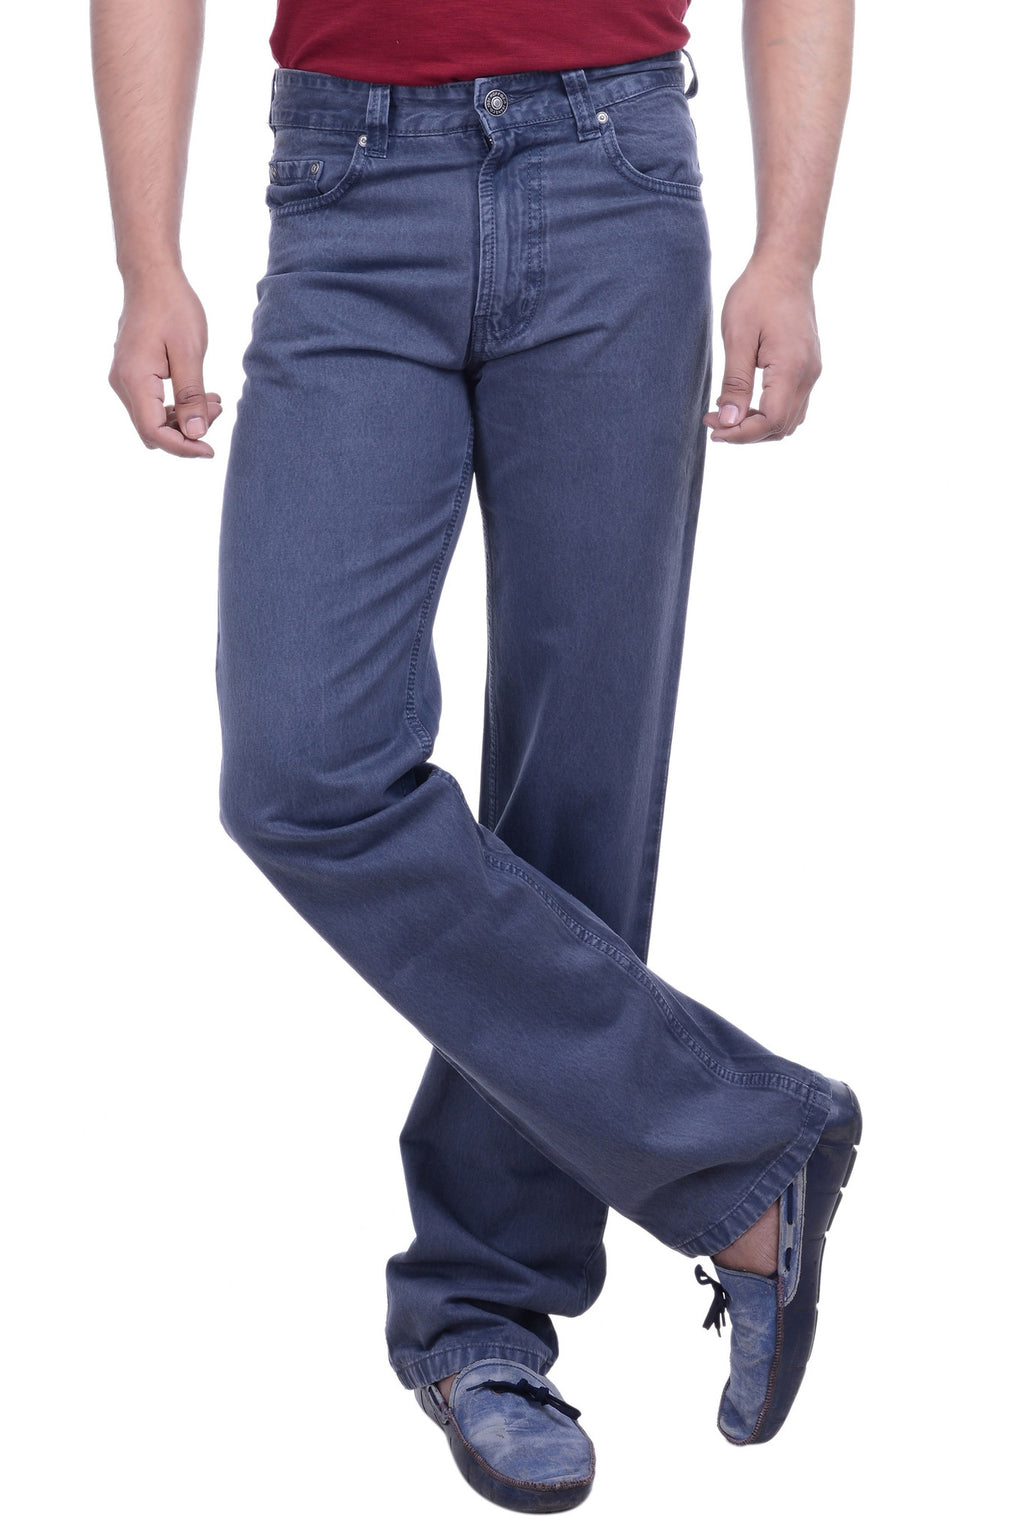 Hoffmen Men's Regular Fit  Cowboy Deep Grey Silky Jeans SDG2107